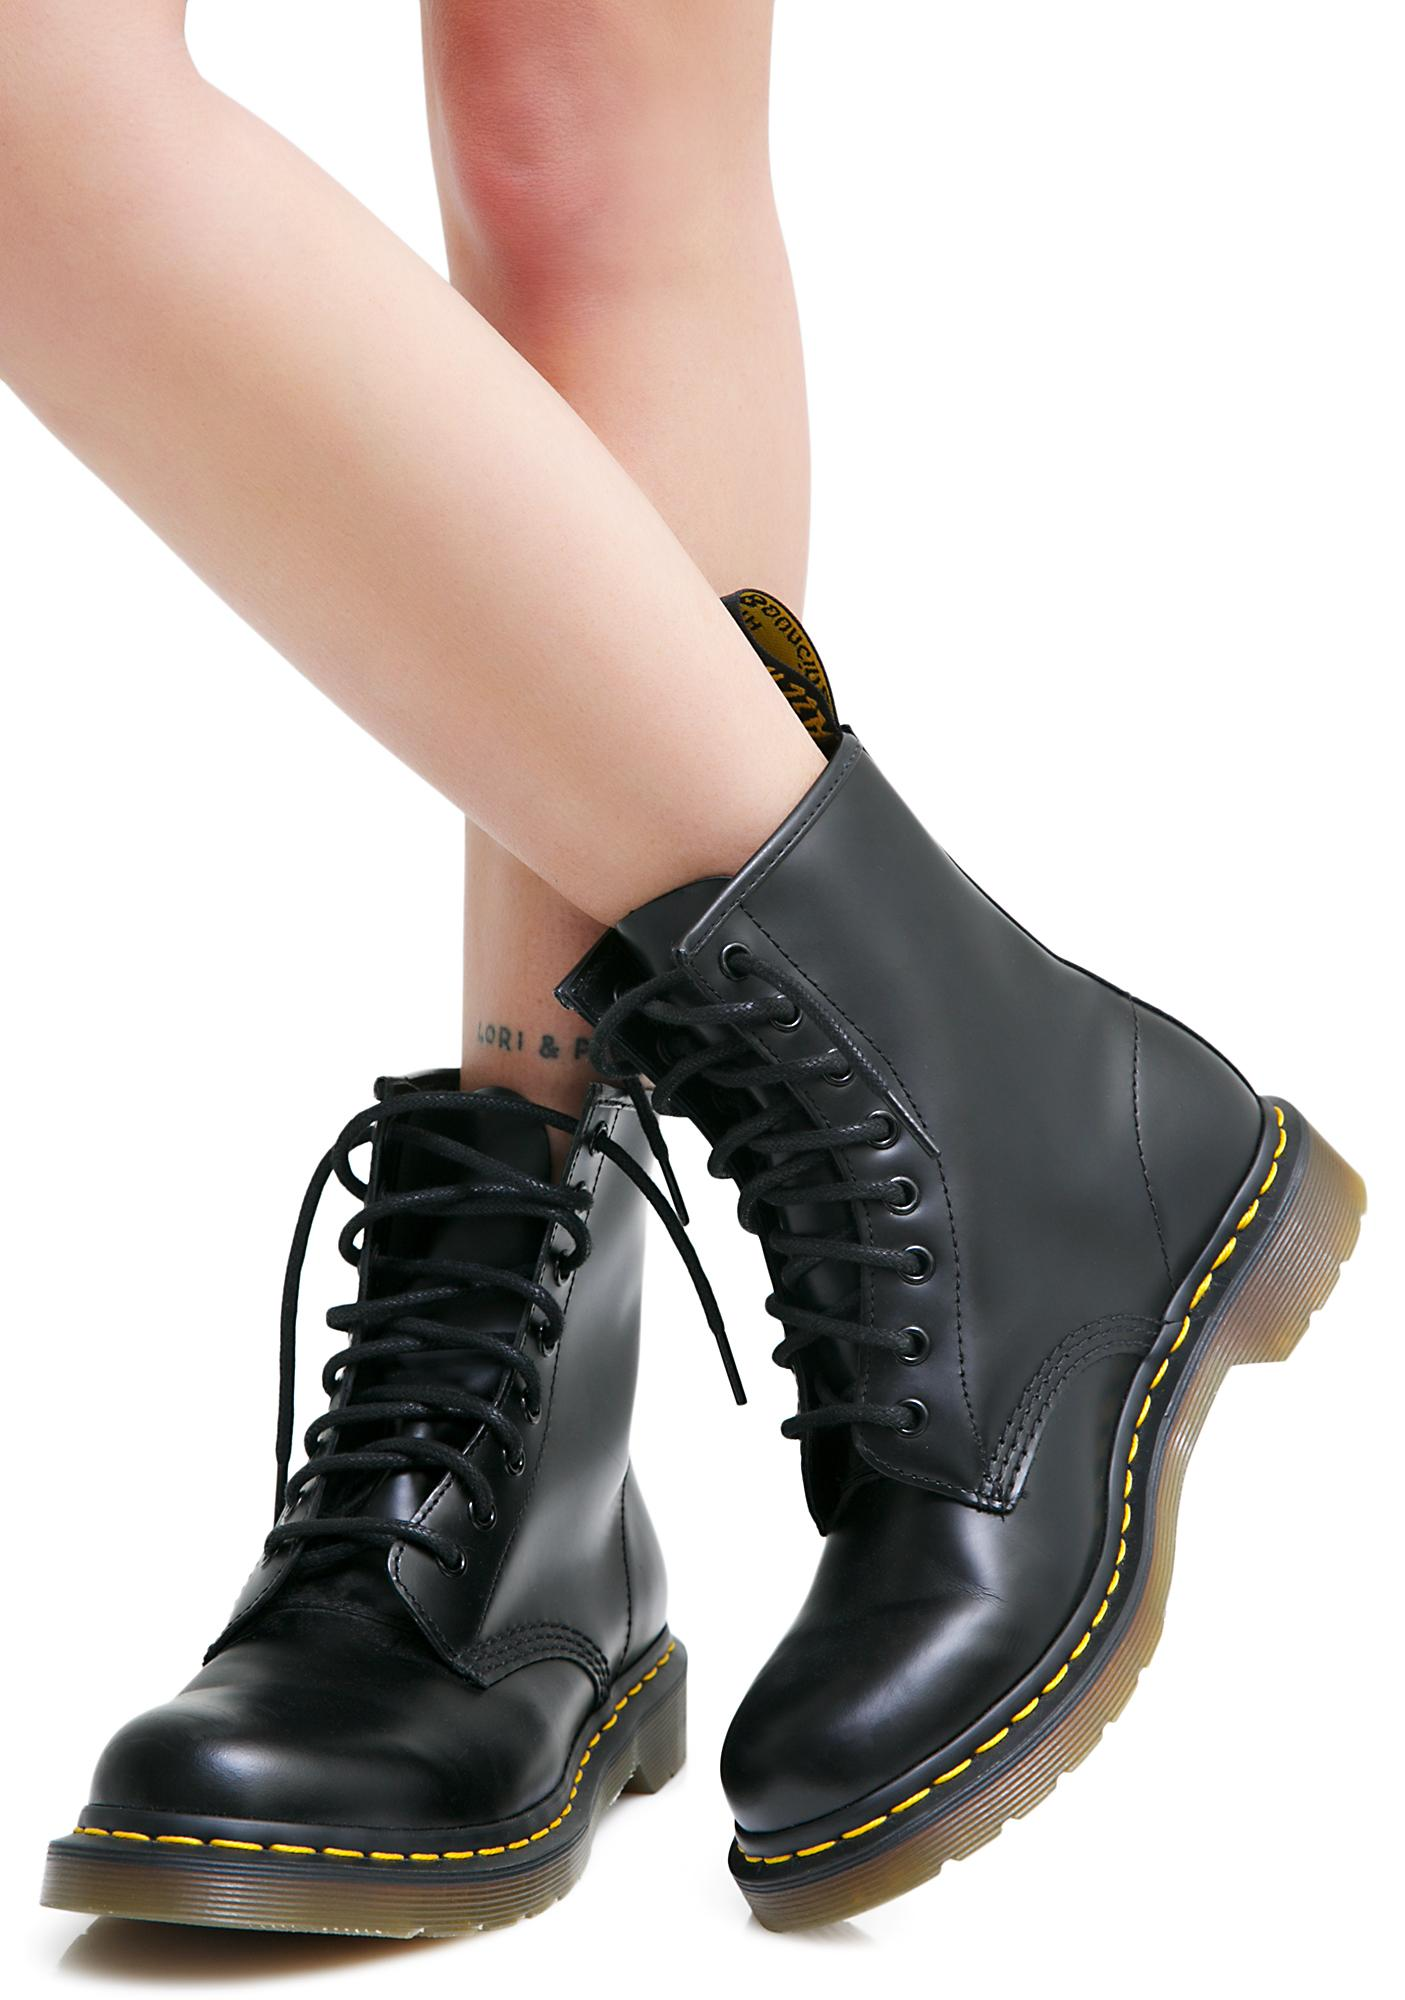 c9dfb6bec1a6 ... Dr. Martens 160.0000 160 0 Add to Wishlist · 1460 8 Eye Boots ...